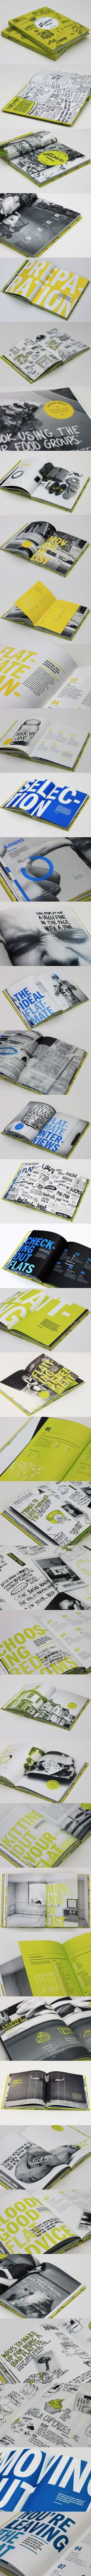 Flatmates Handbook  + use of black and white combined with color, quirky imagery, large typography, pace between spreads.